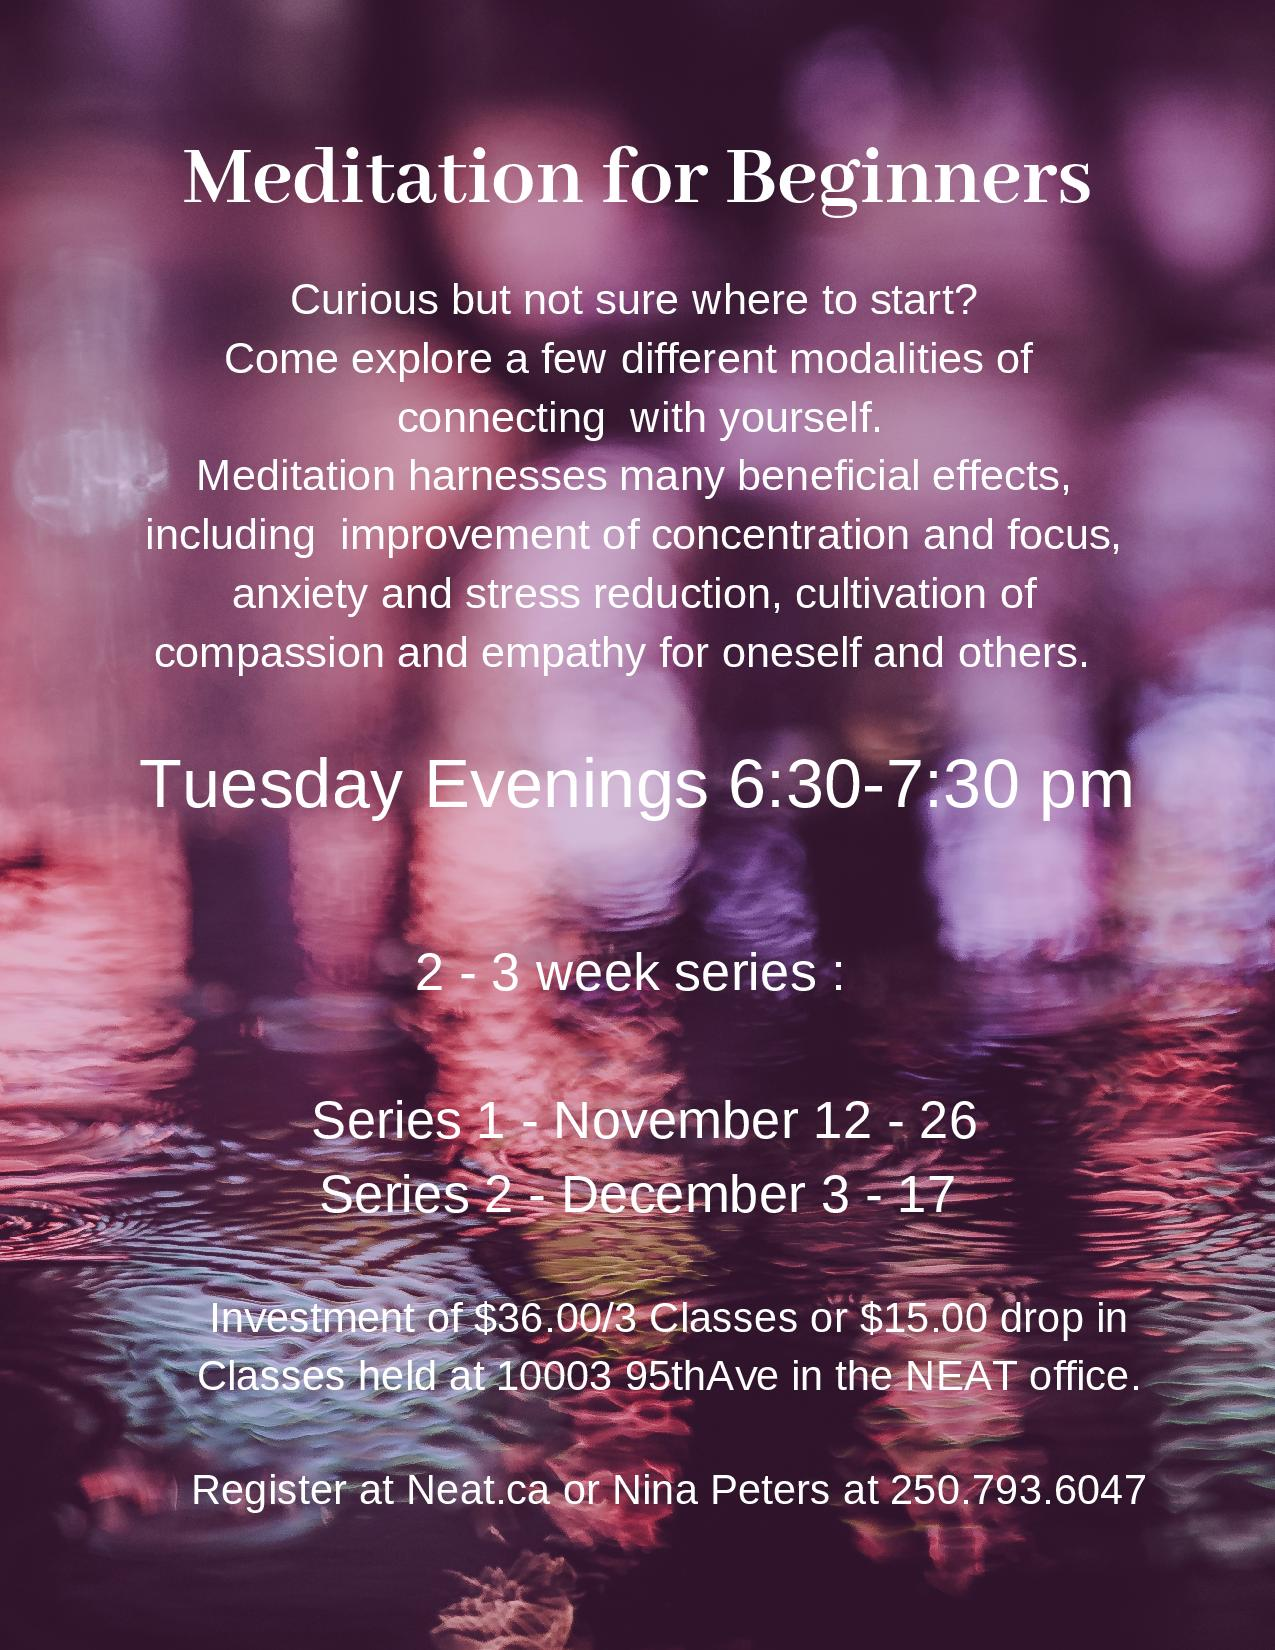 Nina Peters Presents - Meditation for Beginners